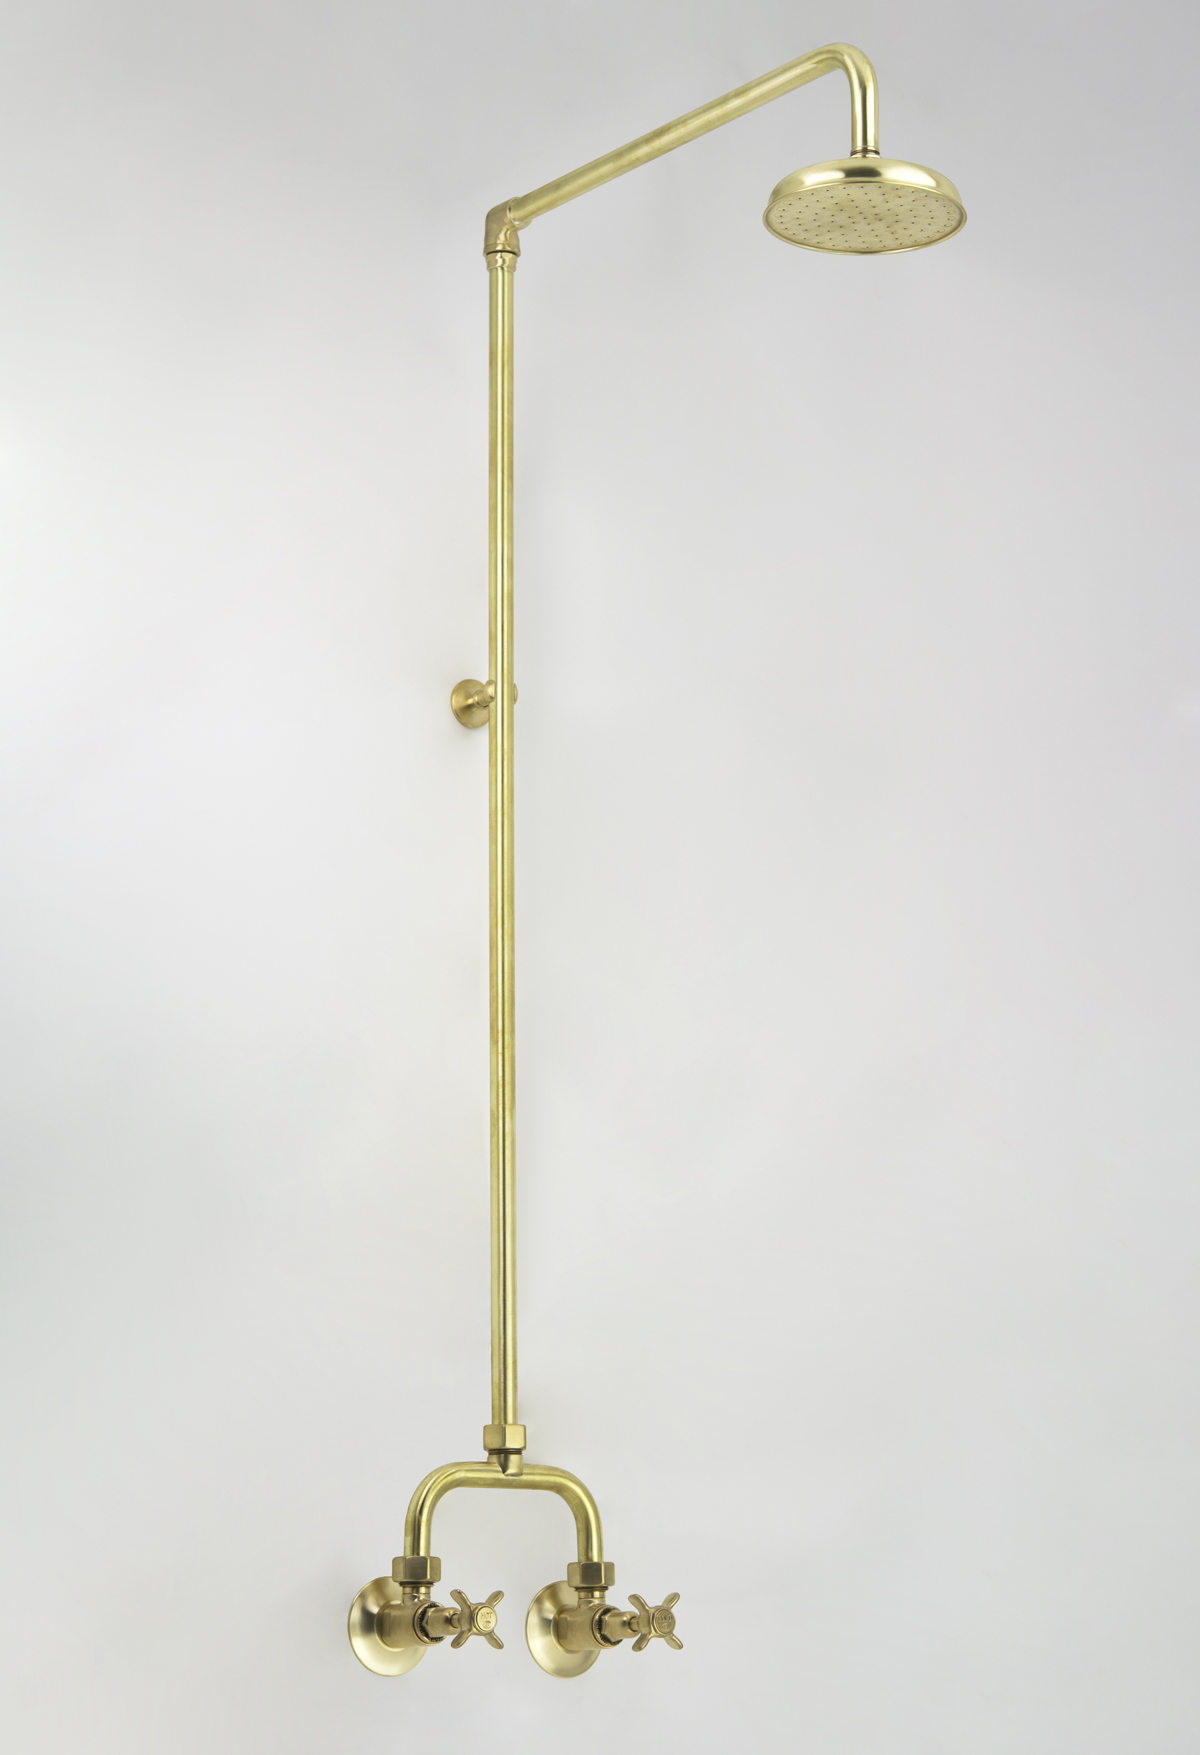 Heritage Alcove Shower Set in Lea Wheeled Brass with Engraved Button Upgrade immediately after manufacture